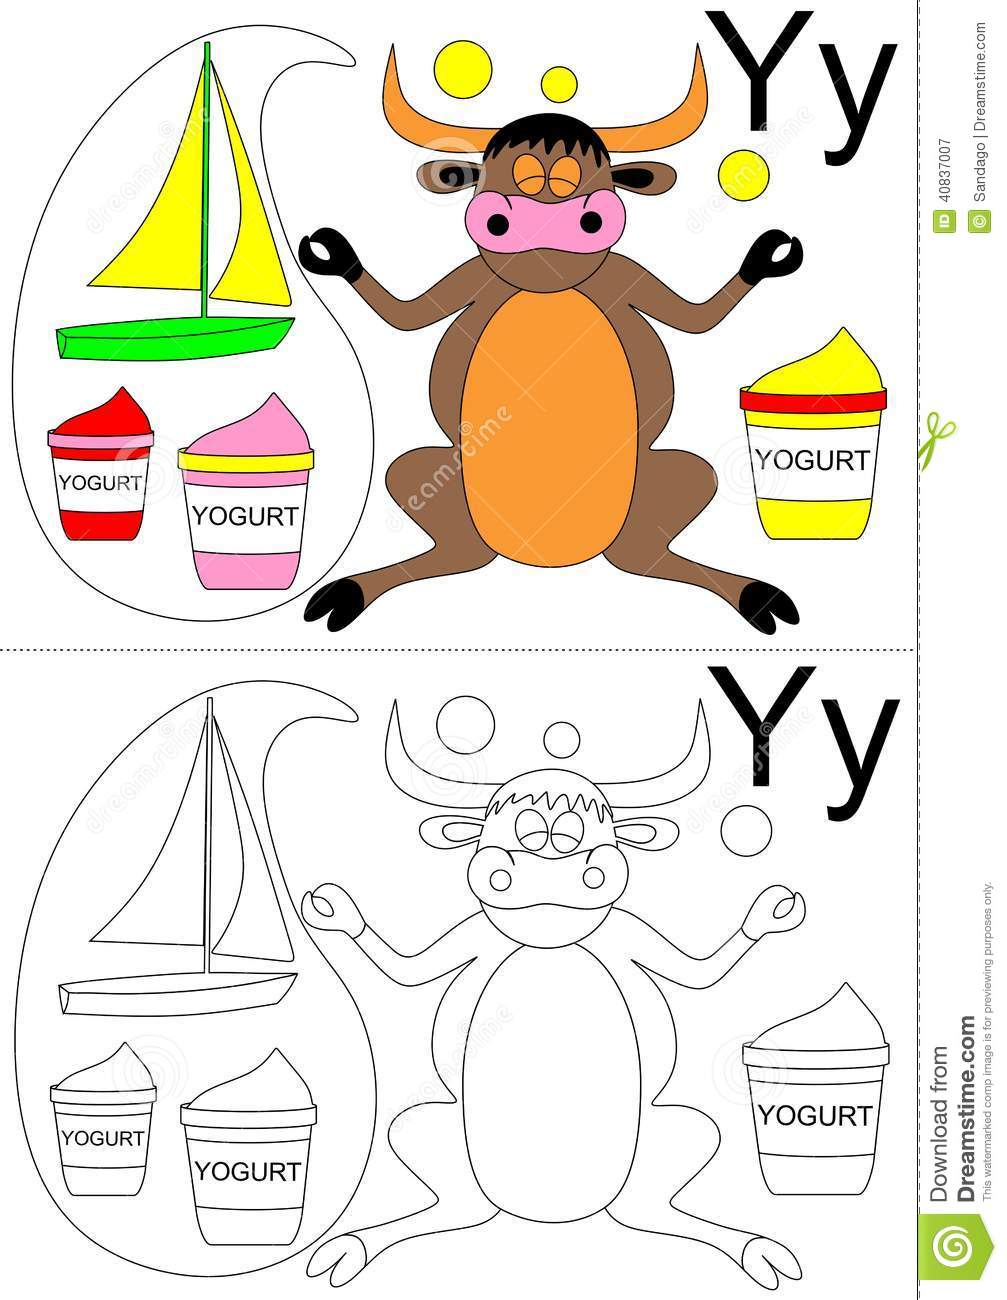 math worksheet : letter y worksheet stock vector  image 40837007 : Letter Y Worksheets For Kindergarten